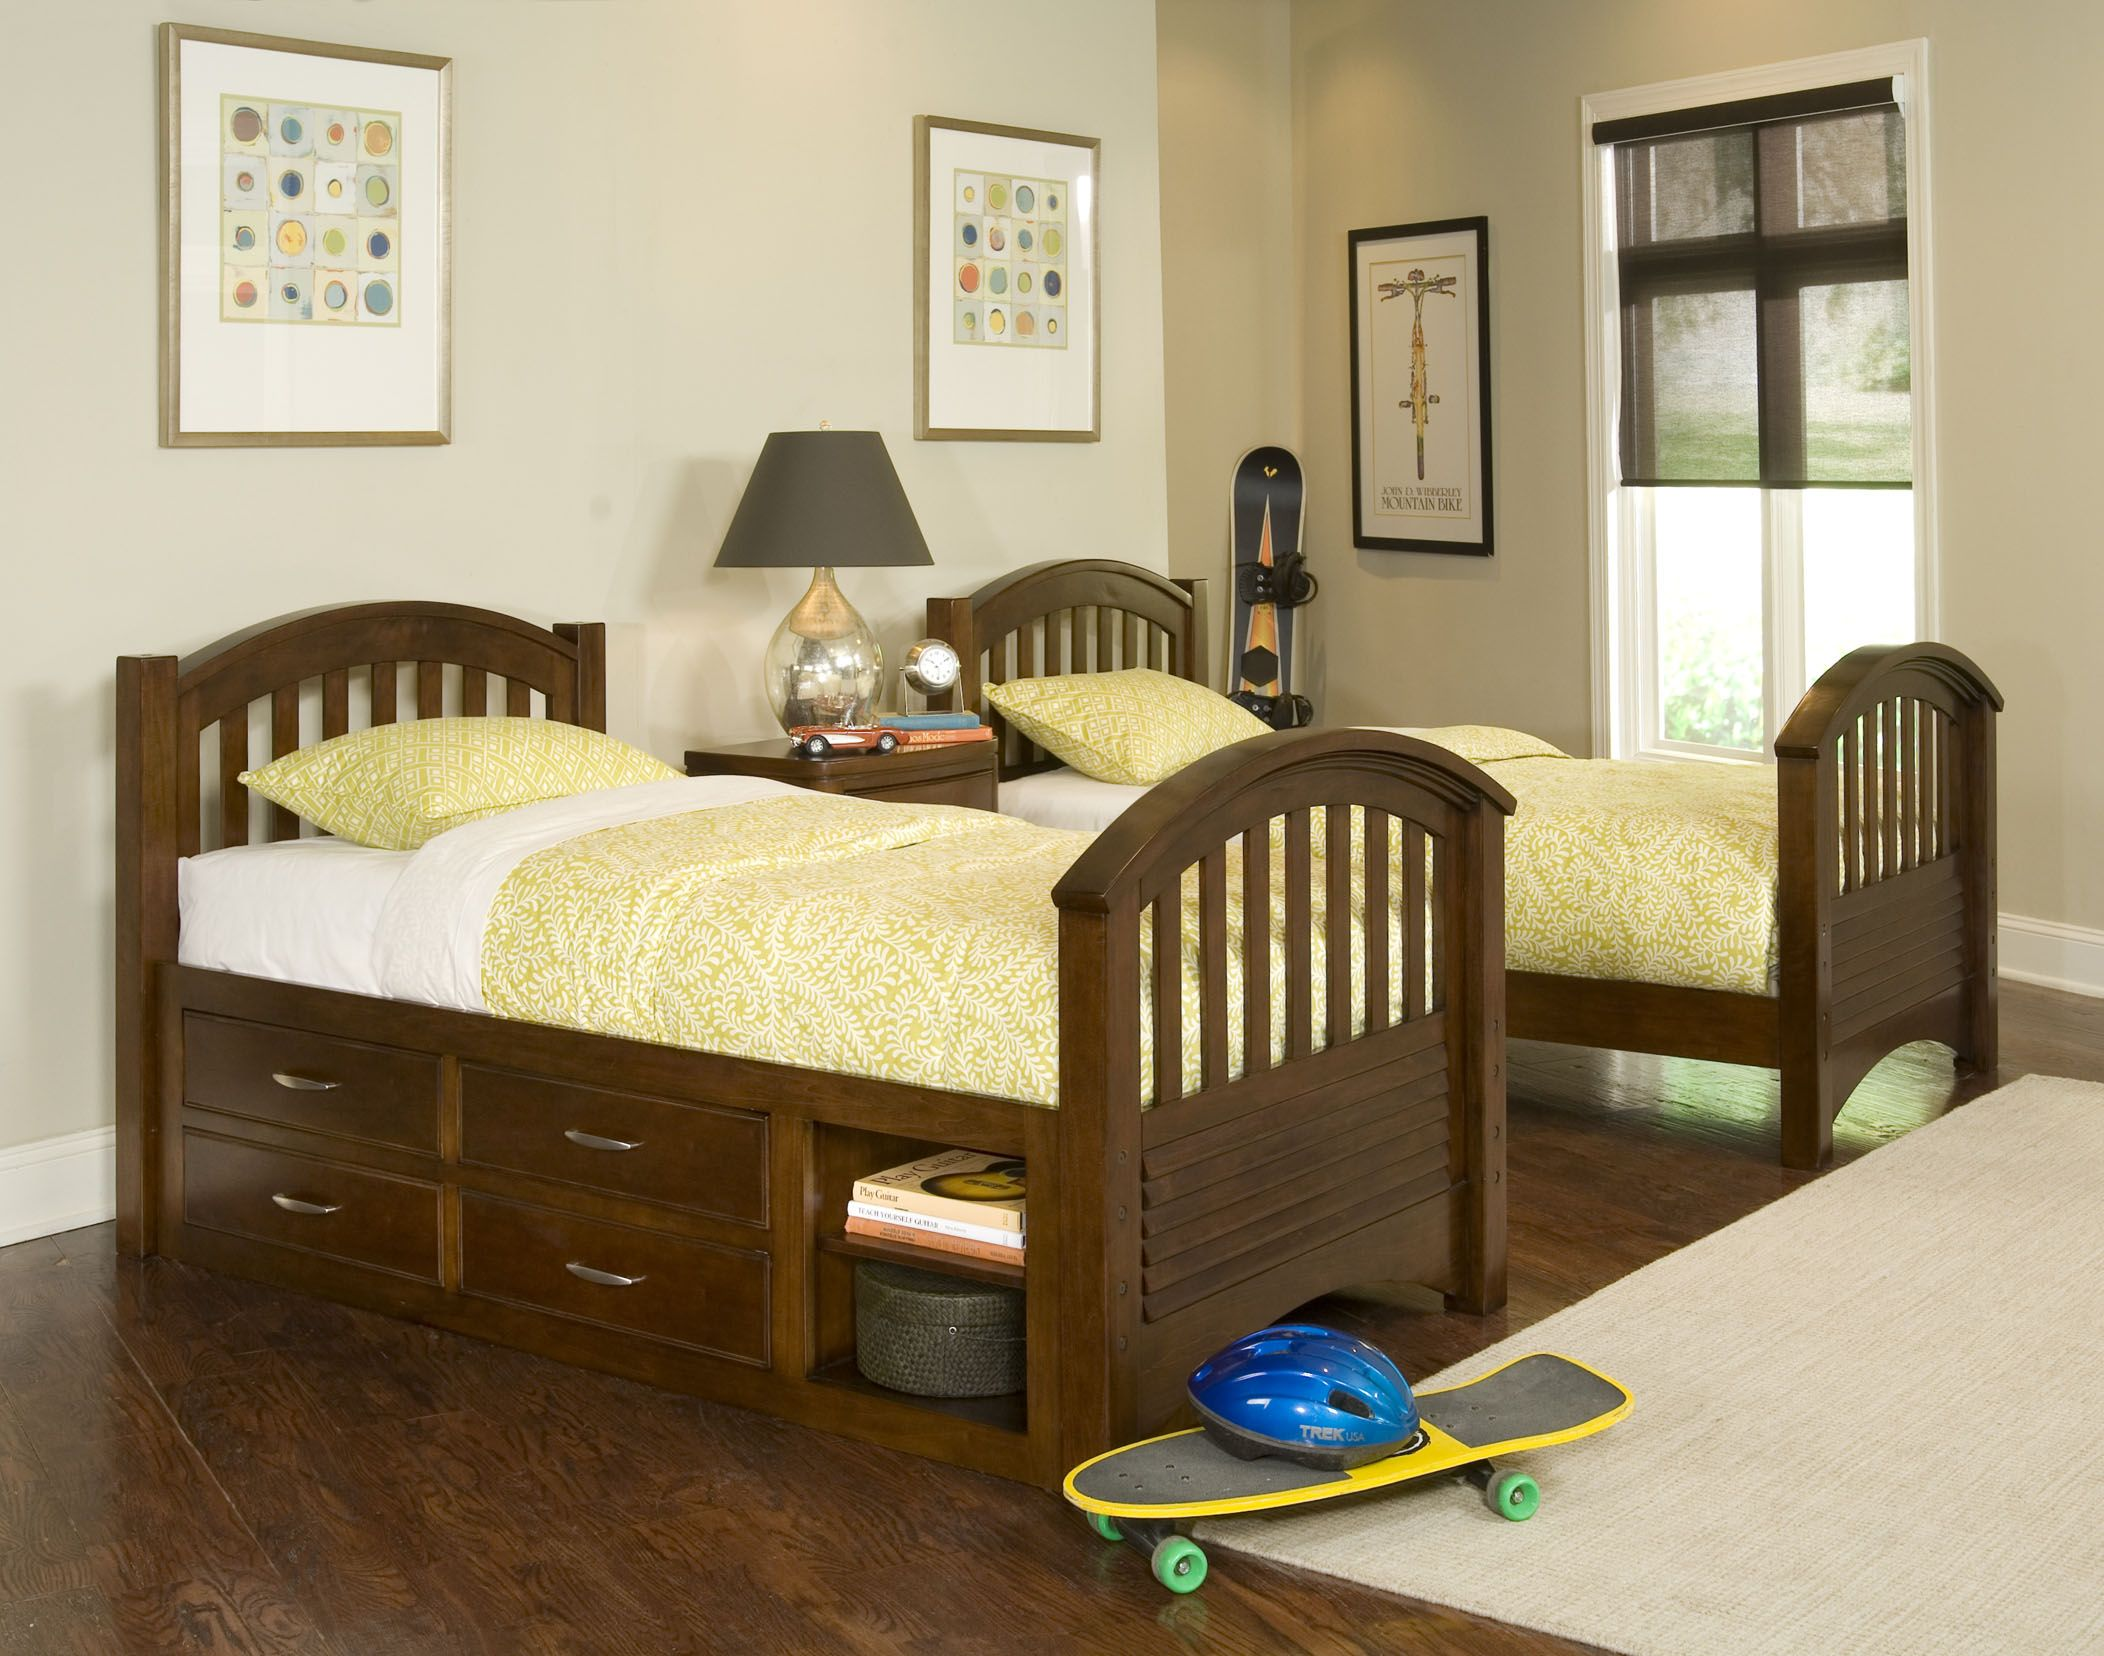 Traditional Wooden Twin Bed For Boys And Simple Nightstand